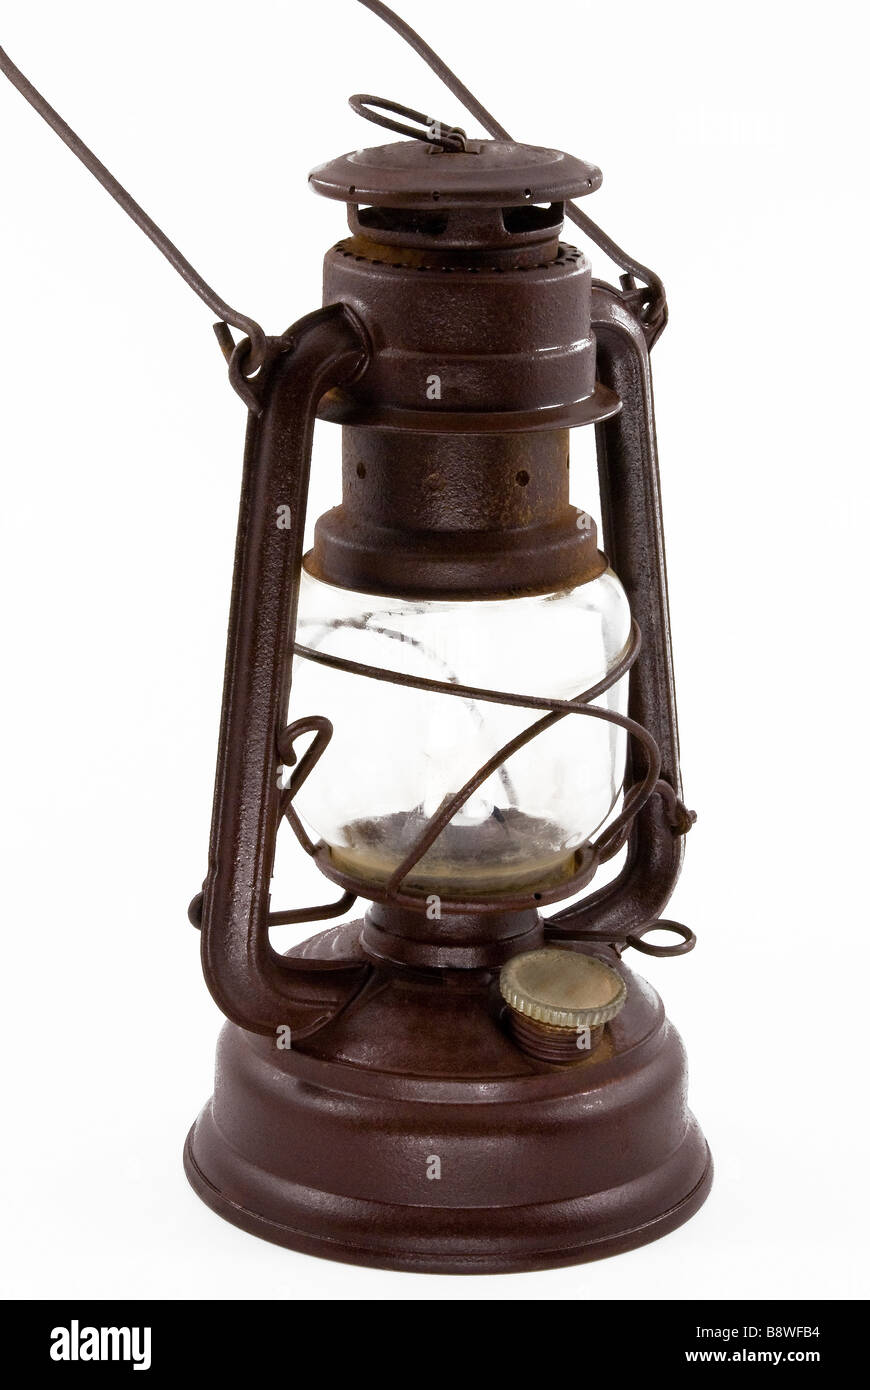 old glass kerosene lamp with a dark brown color - Stock Image